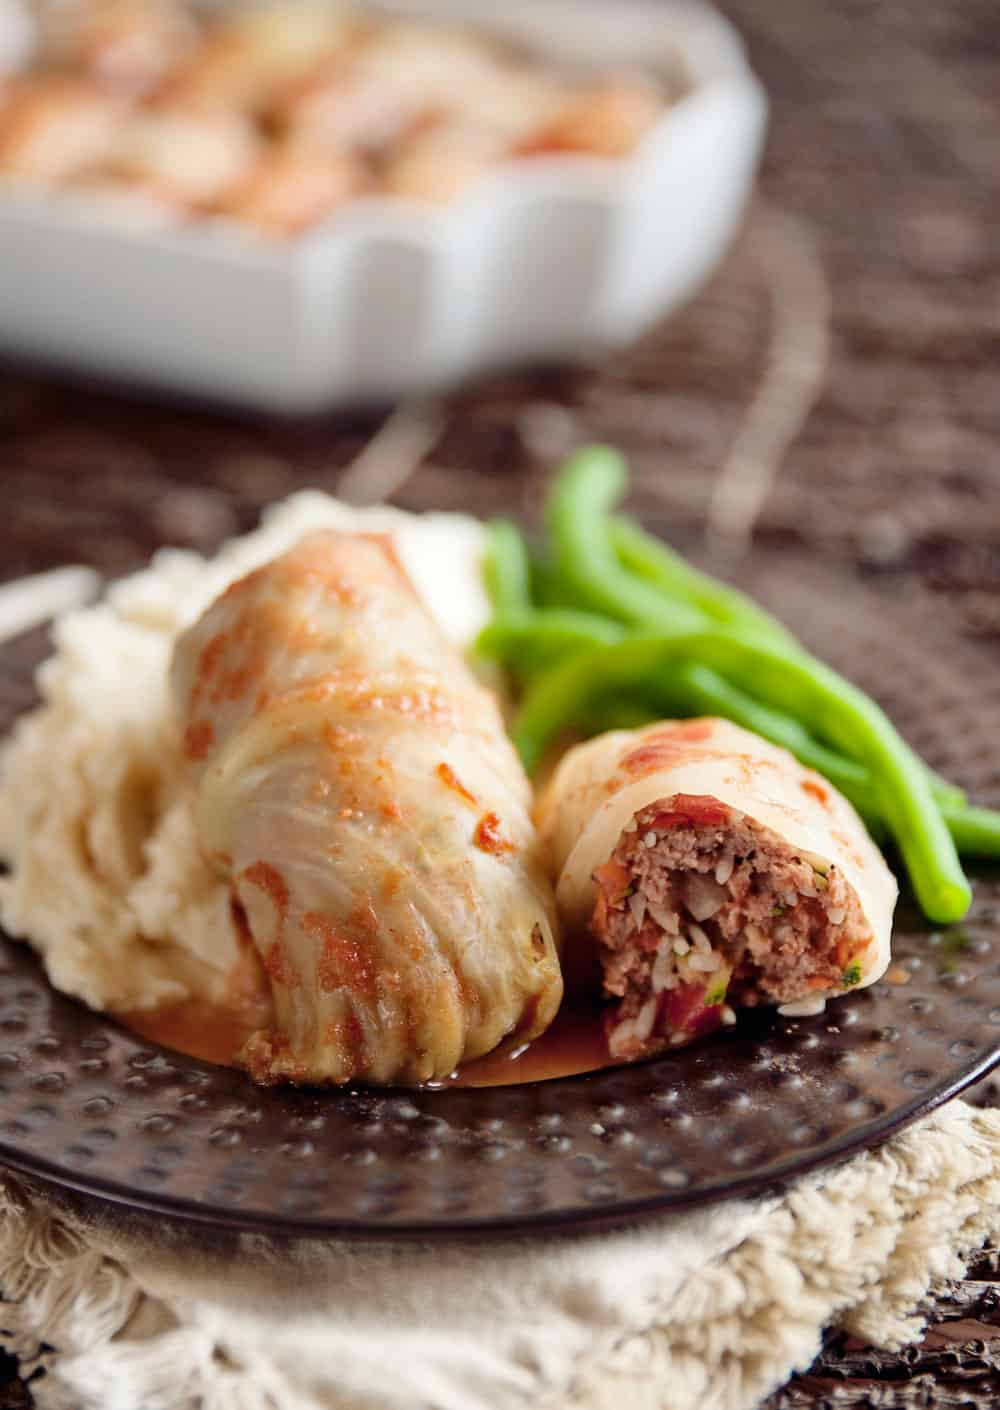 Beef, Rice & Vegetable Stuffed Cabbage Rolls are an old comforting dinner recipe made healthier with the addition of lots of vegetables!